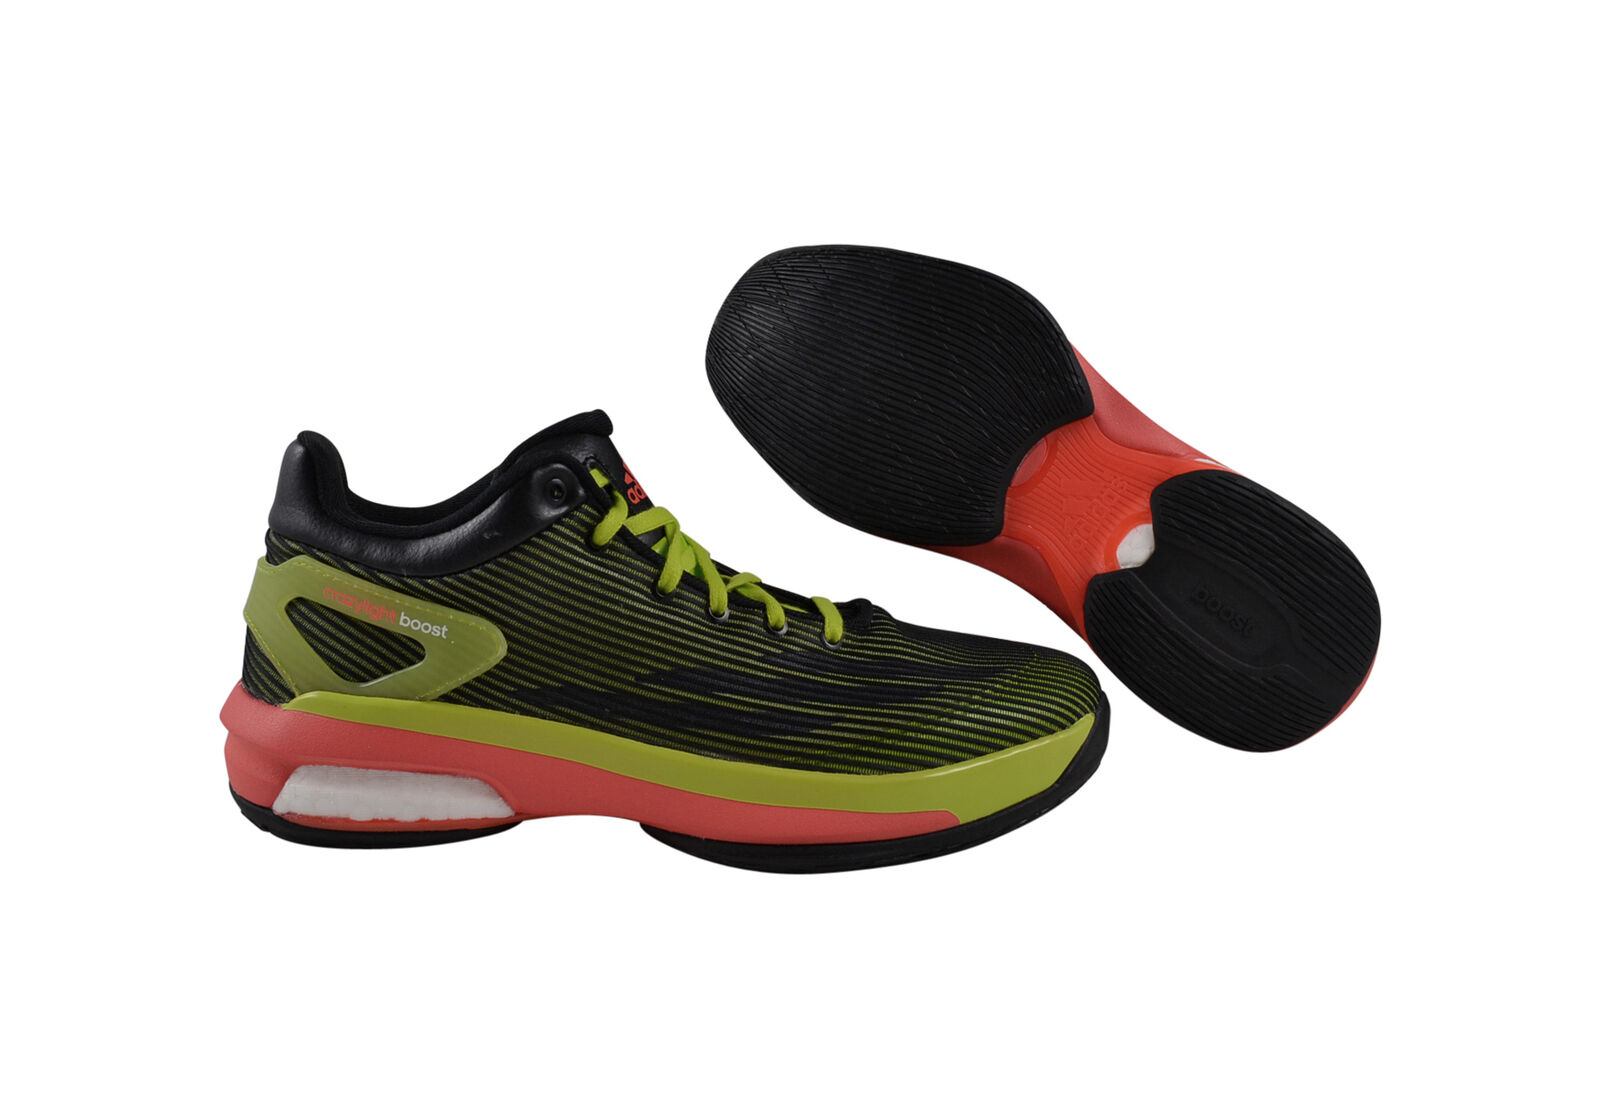 Adidas Crazylight Boost Low black/green/red Basketballschuhe schwarz